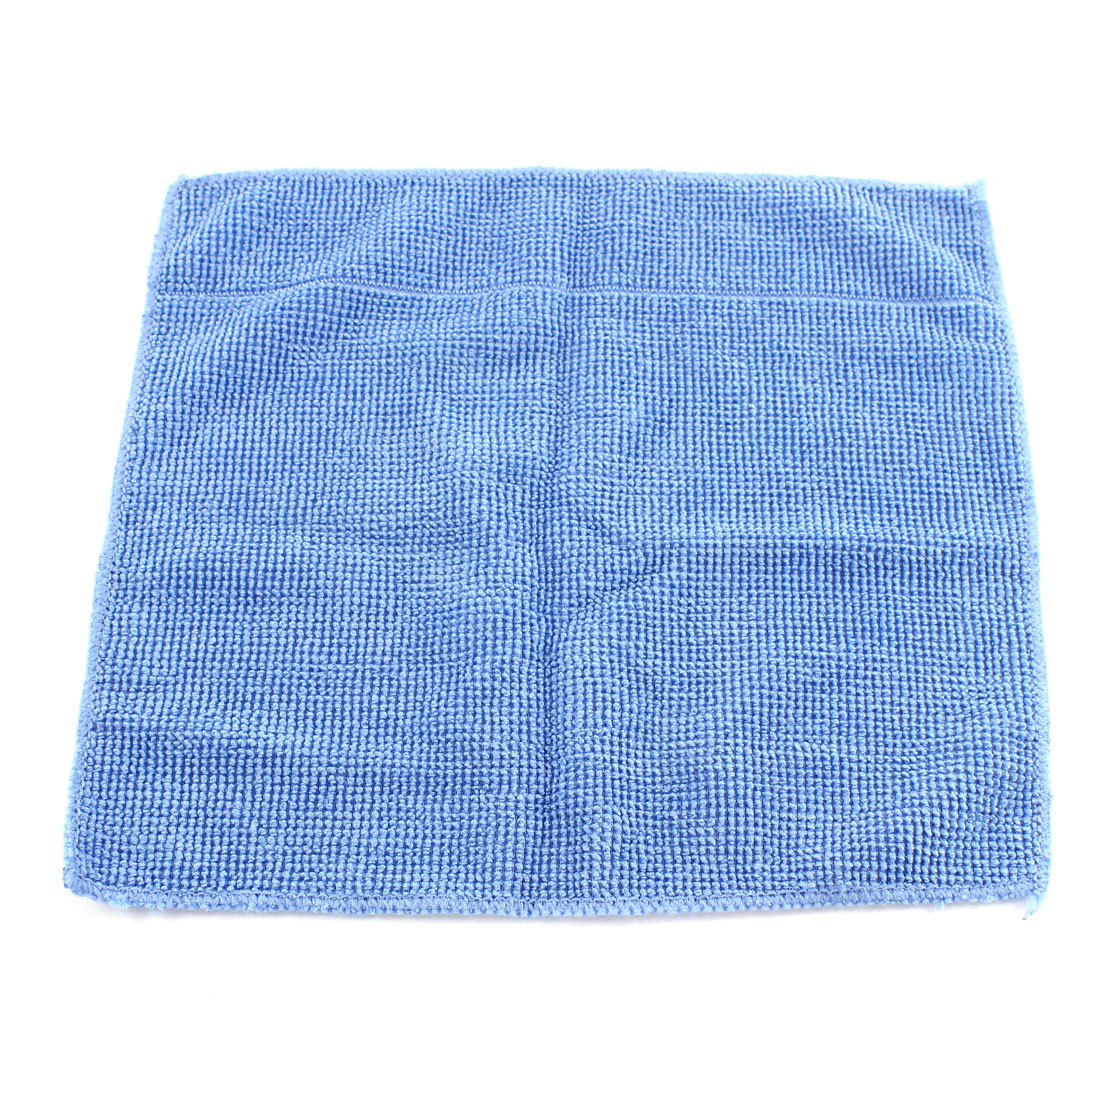 18cm x 19cm Soft Cleaning Cloth Cleaner Blue for Camera Lens